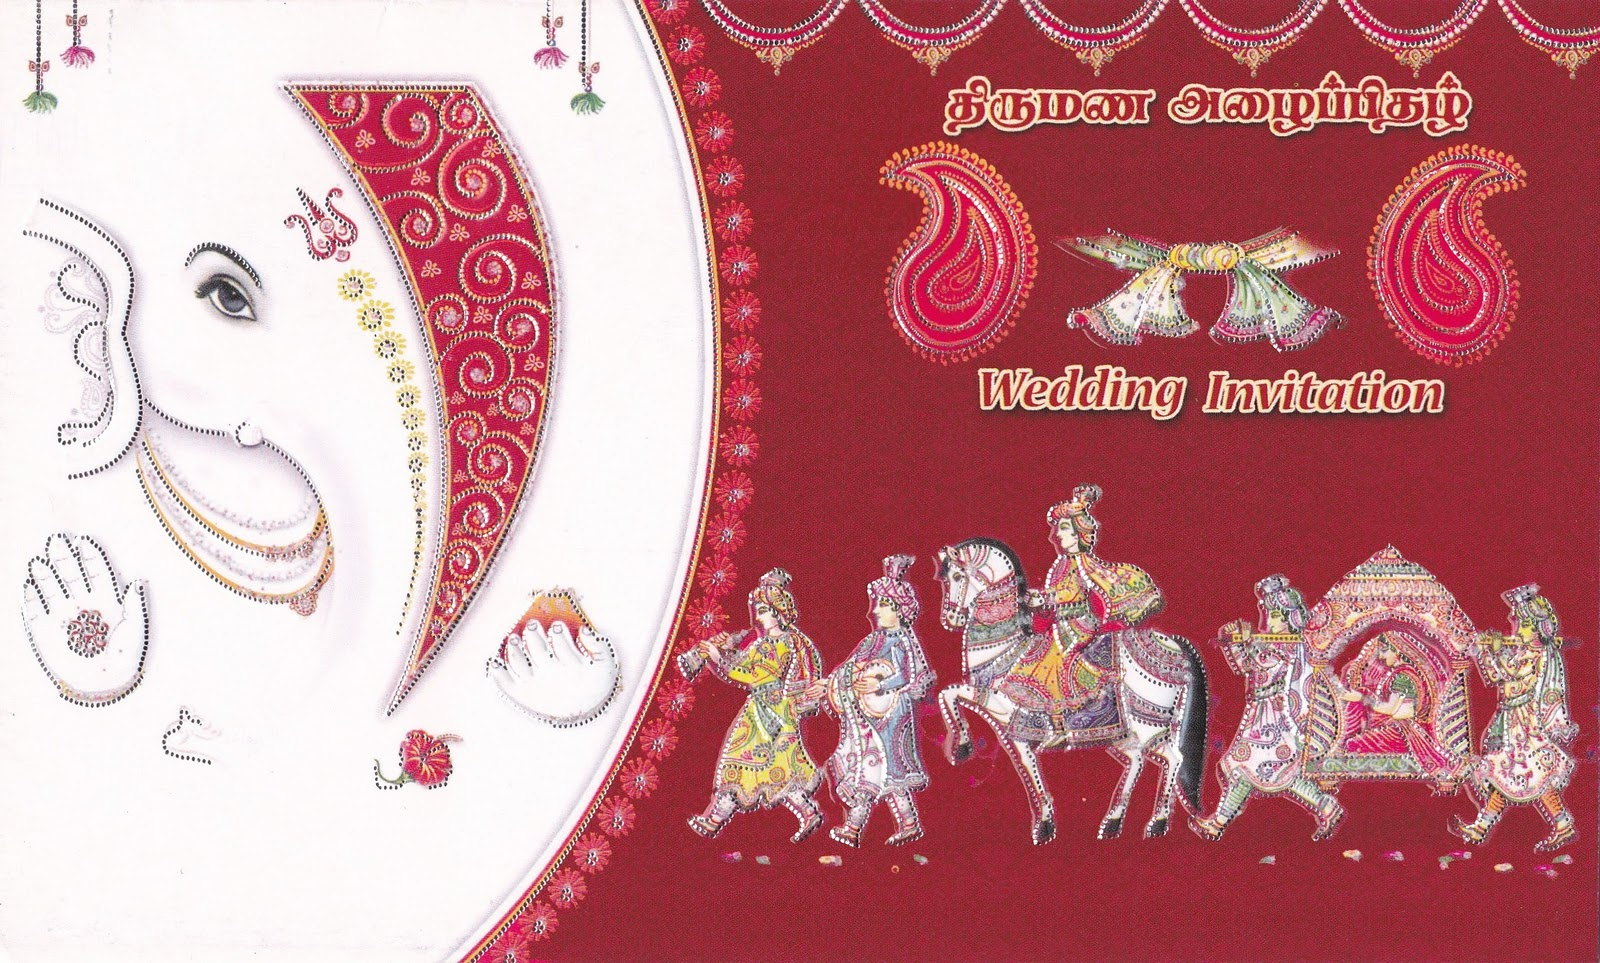 of indian wedding cards is, 1600x963 in 481.9KB